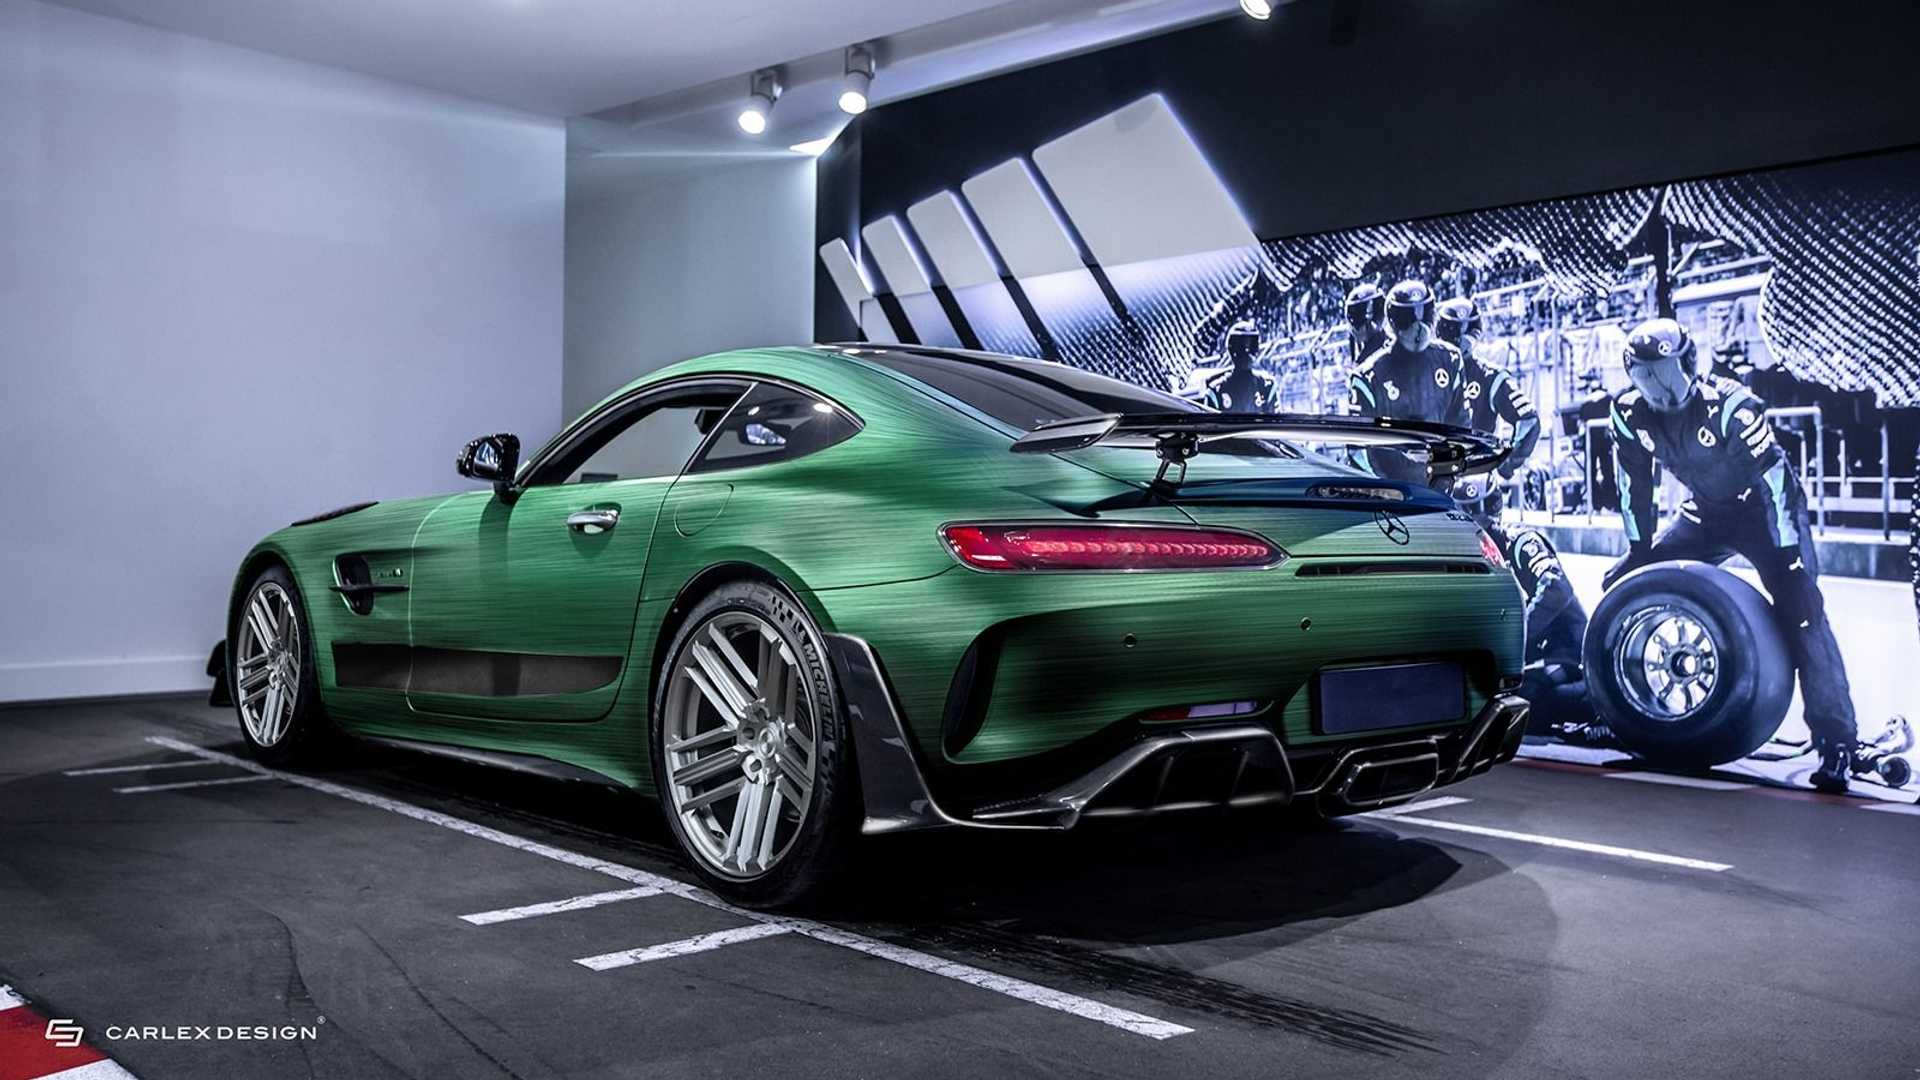 Mercedes-AMG-GT-R-Pro-'Tattoo-Edition'-by-Carlex-Design.jpg